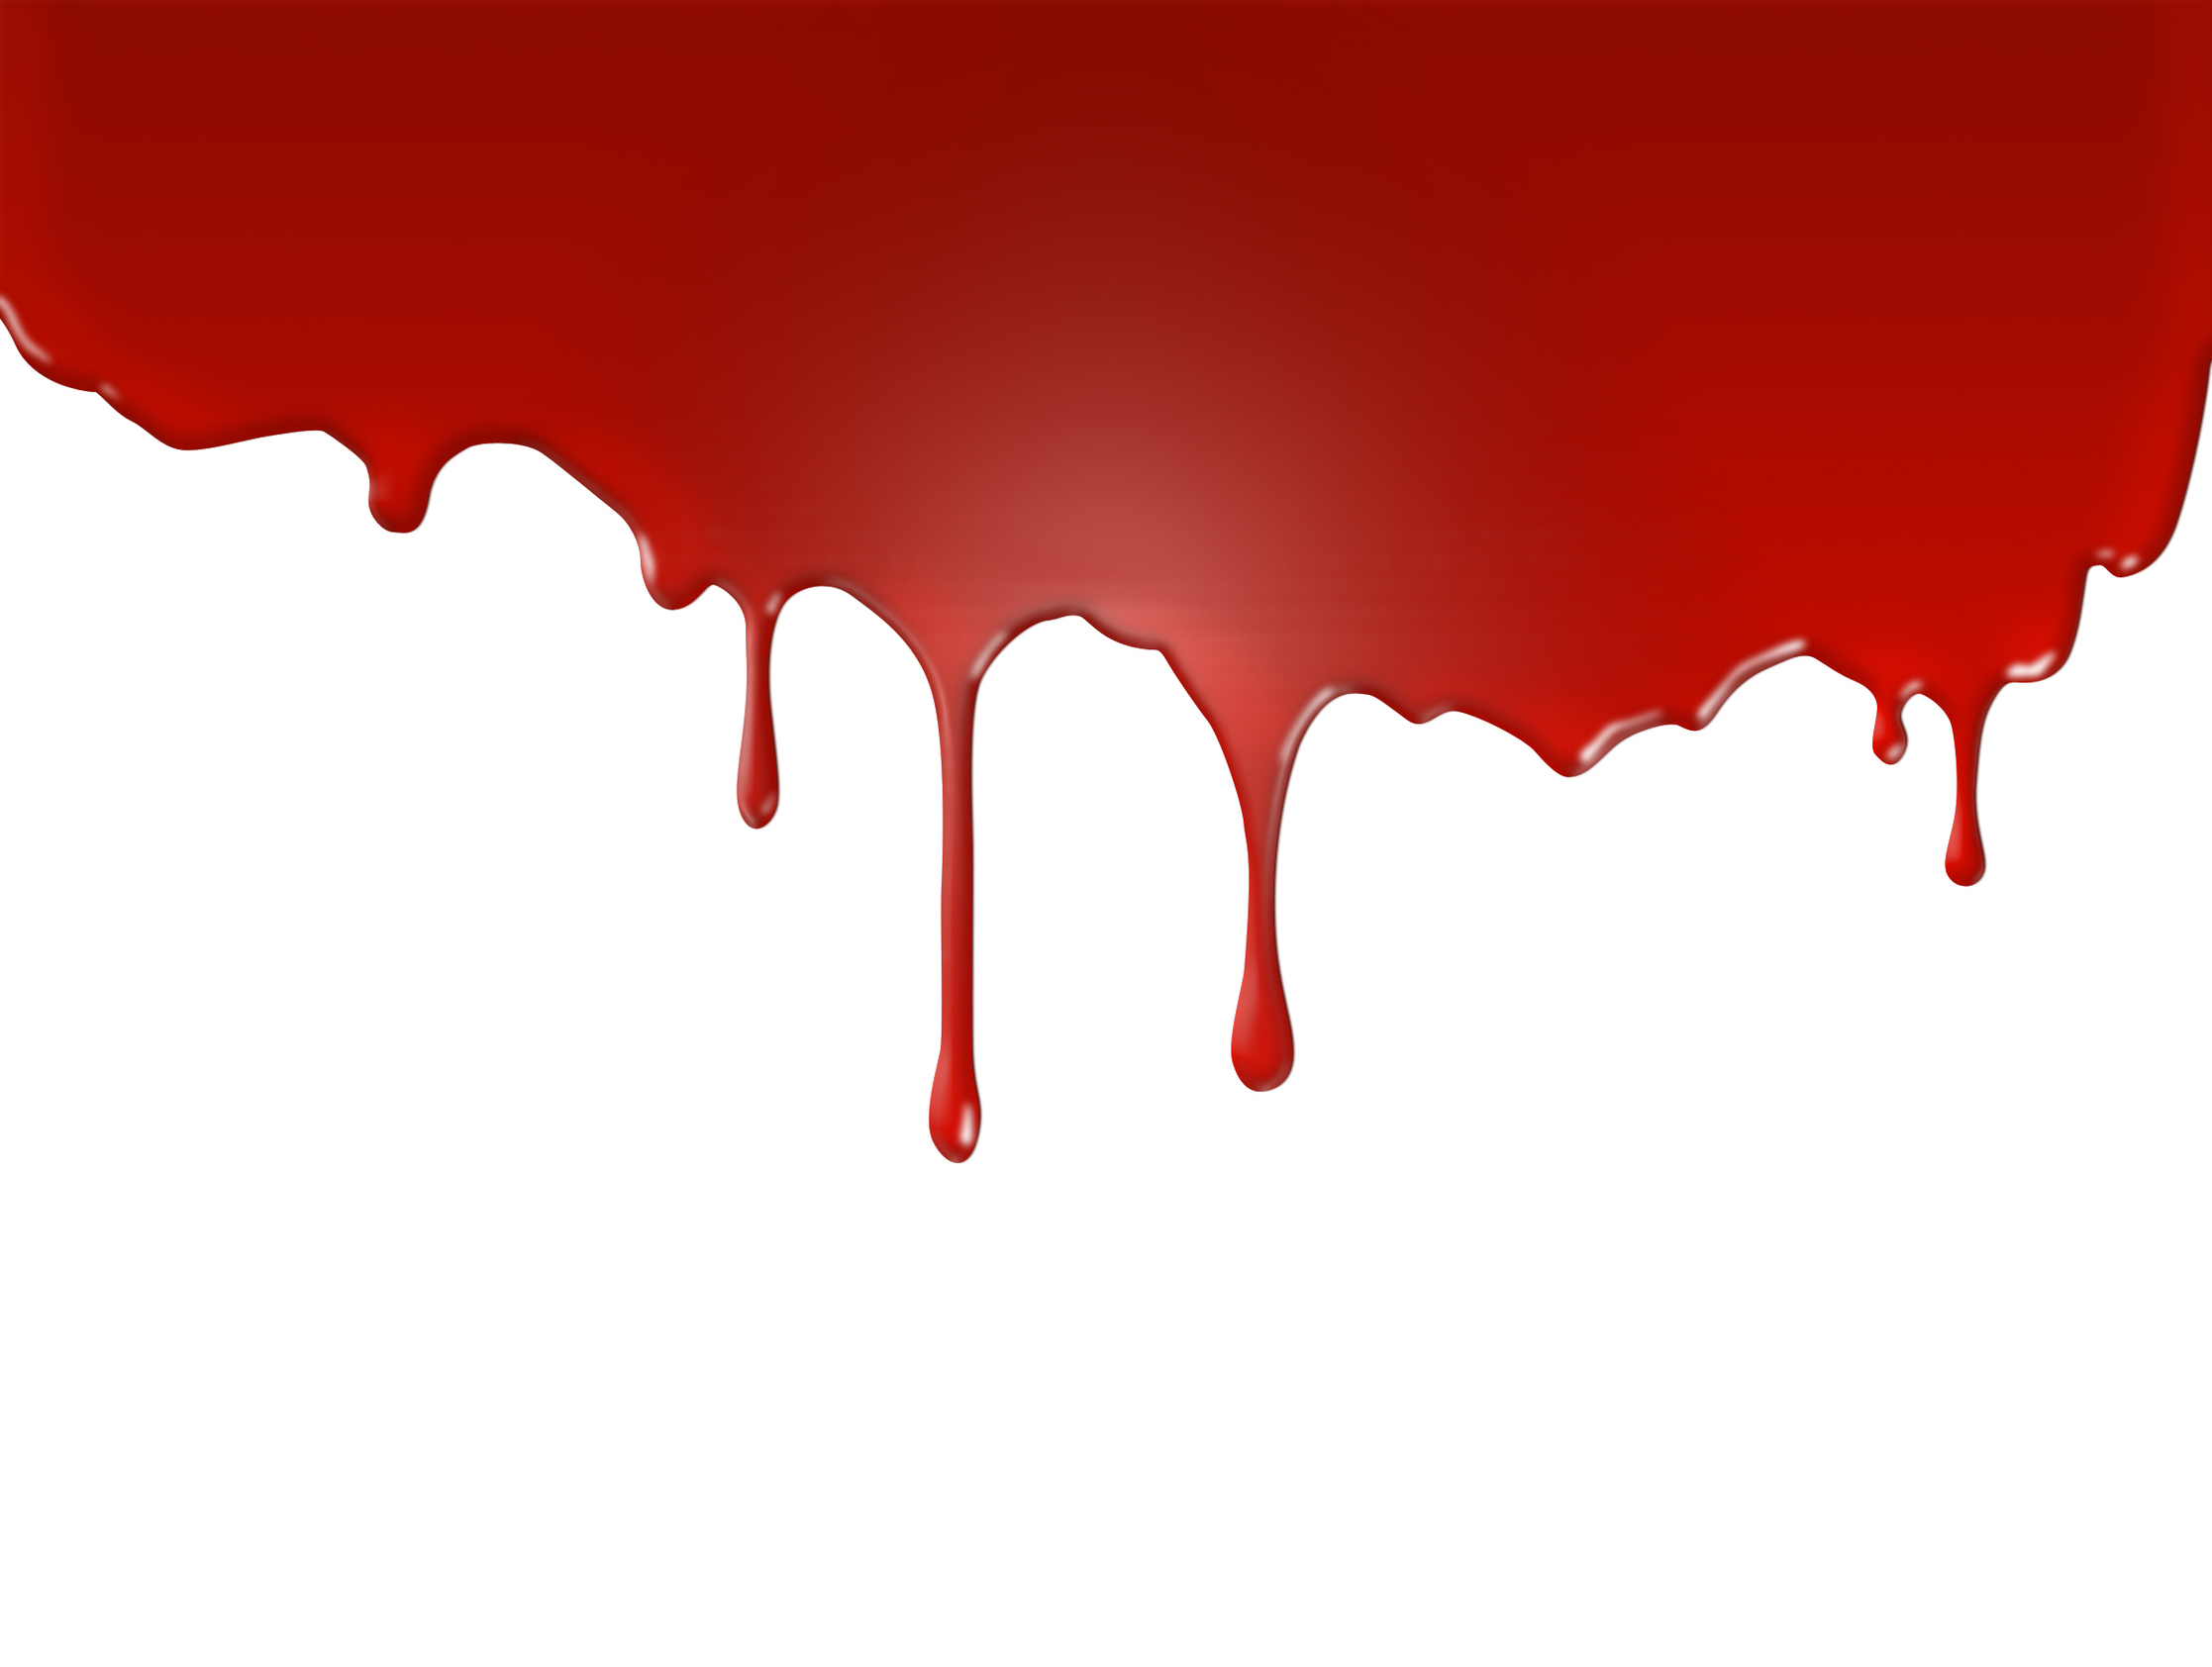 Blood dripping clipart.